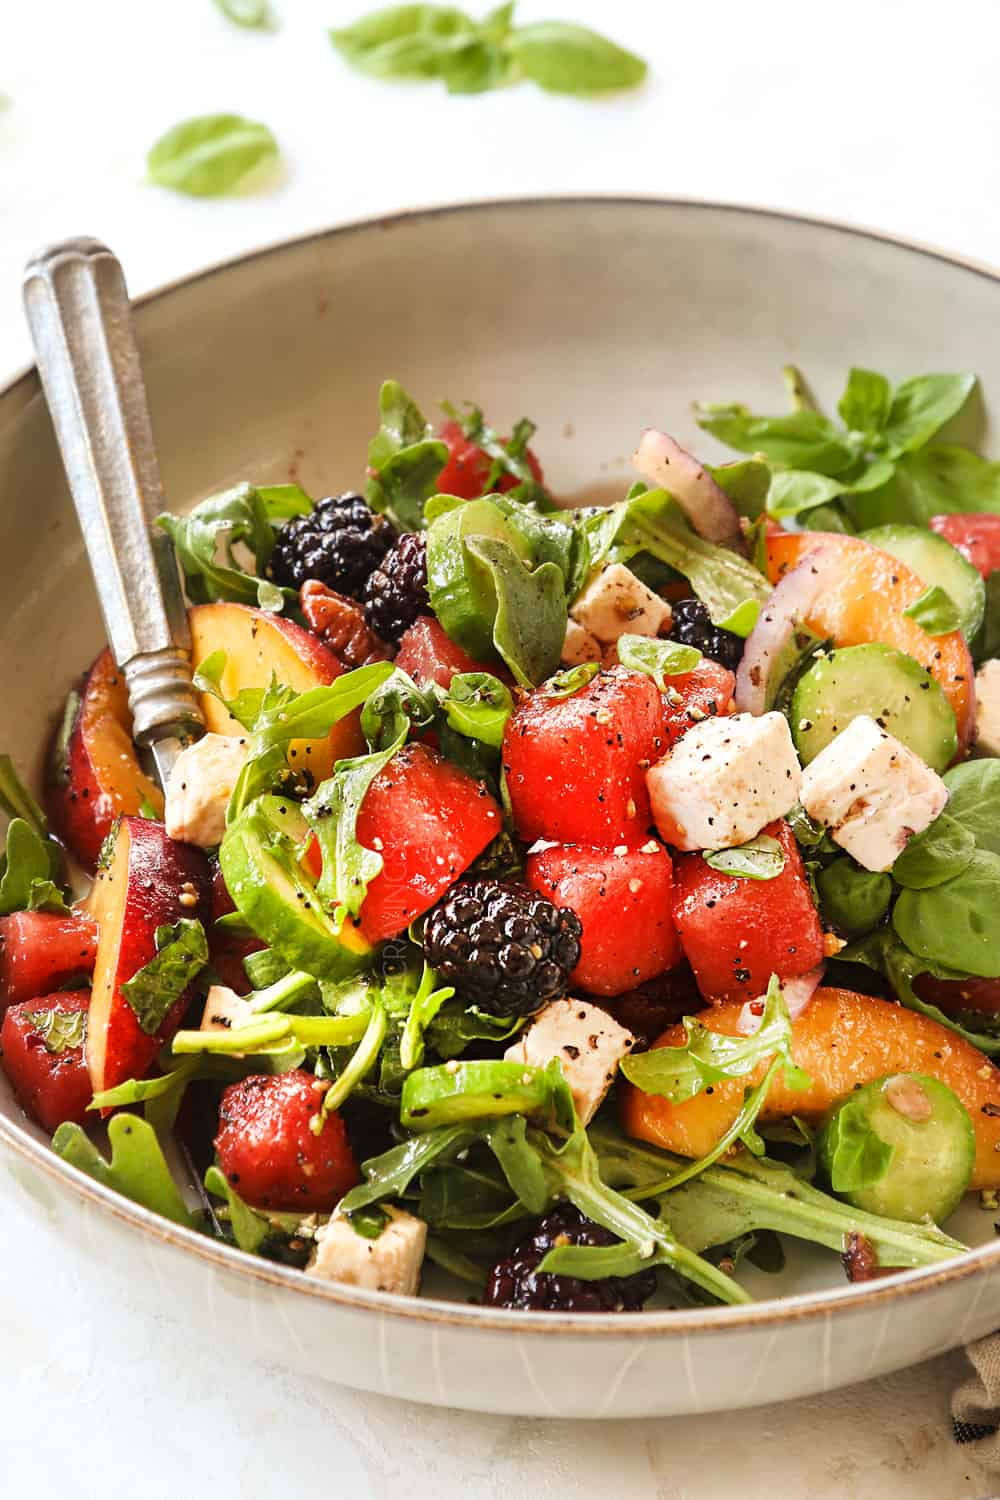 a bowl of watermelon salad with feta, mint, basil, cucumbers, and berries over a bed of arugula